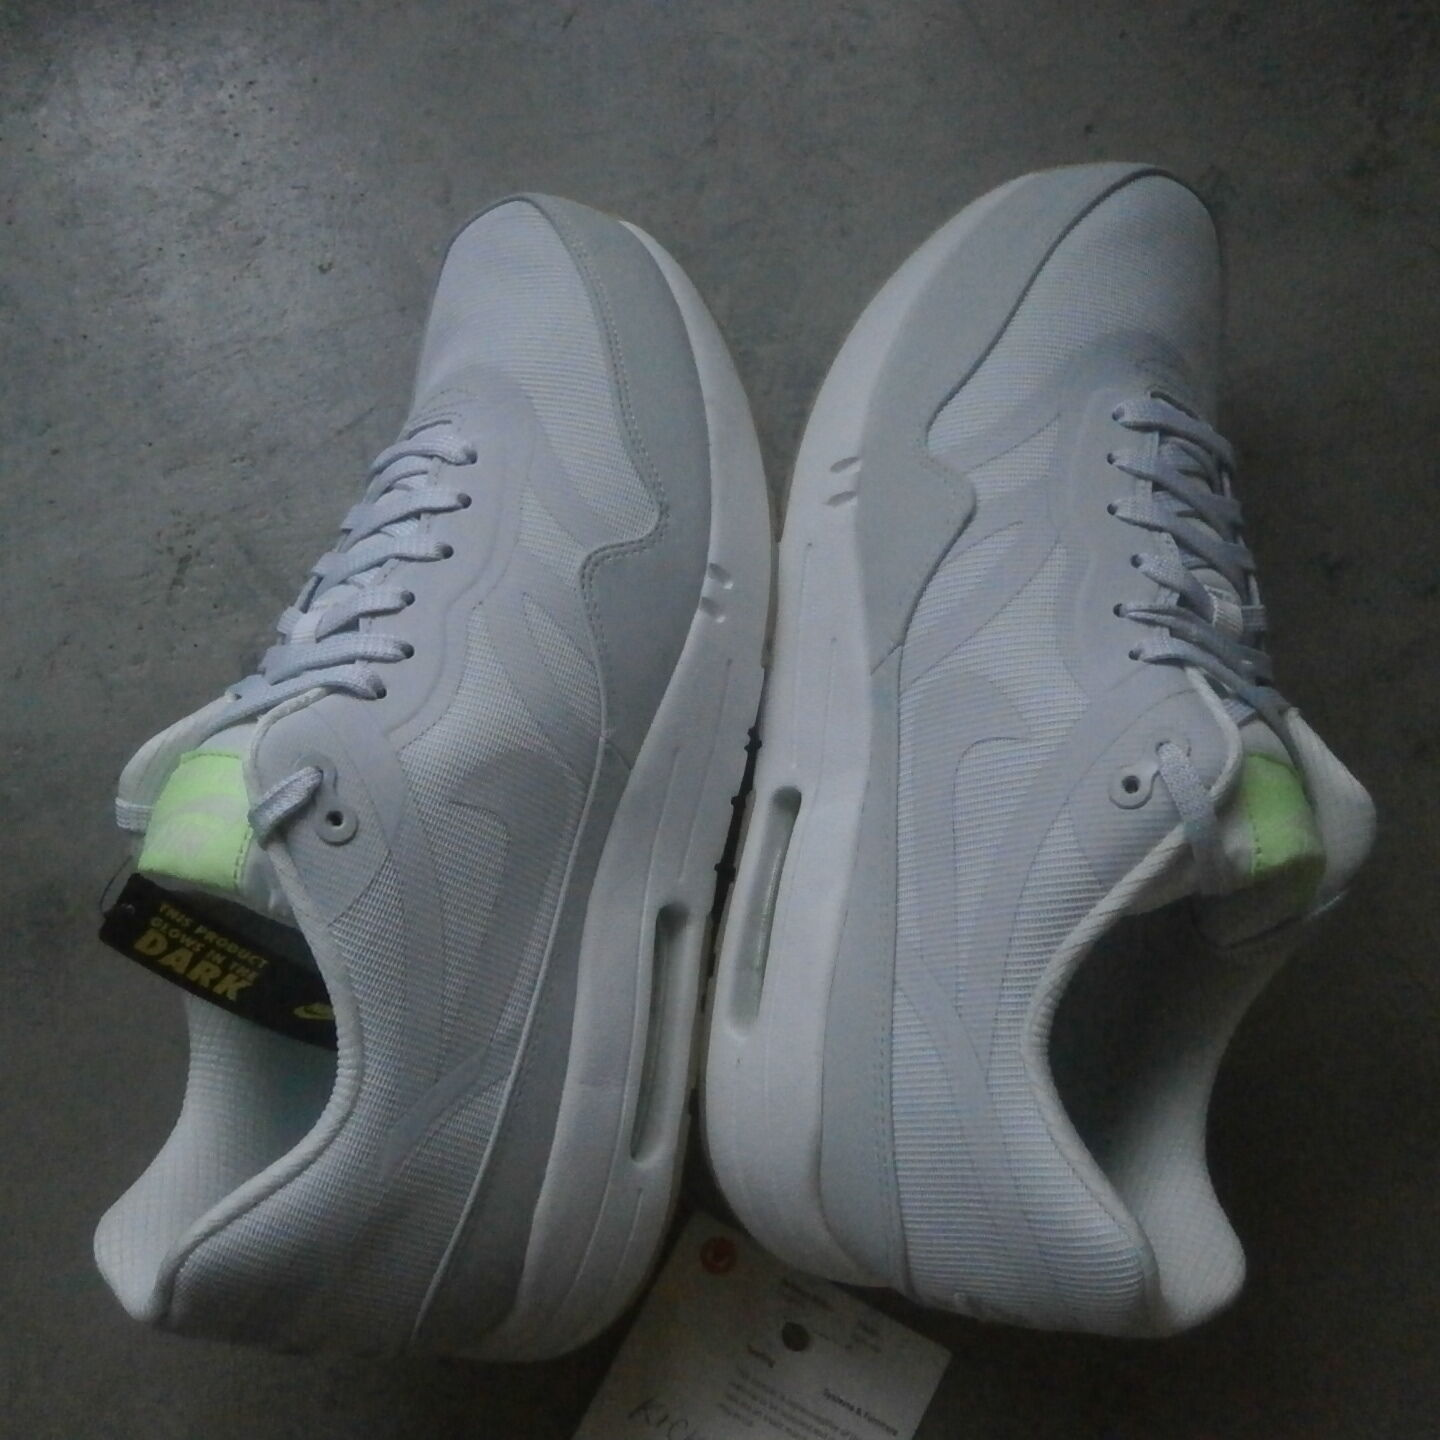 Nike AIR MAX 1 one Tape  GITD  sz 10 GLOW white 599514 103 atmos patta hoh 90 DS